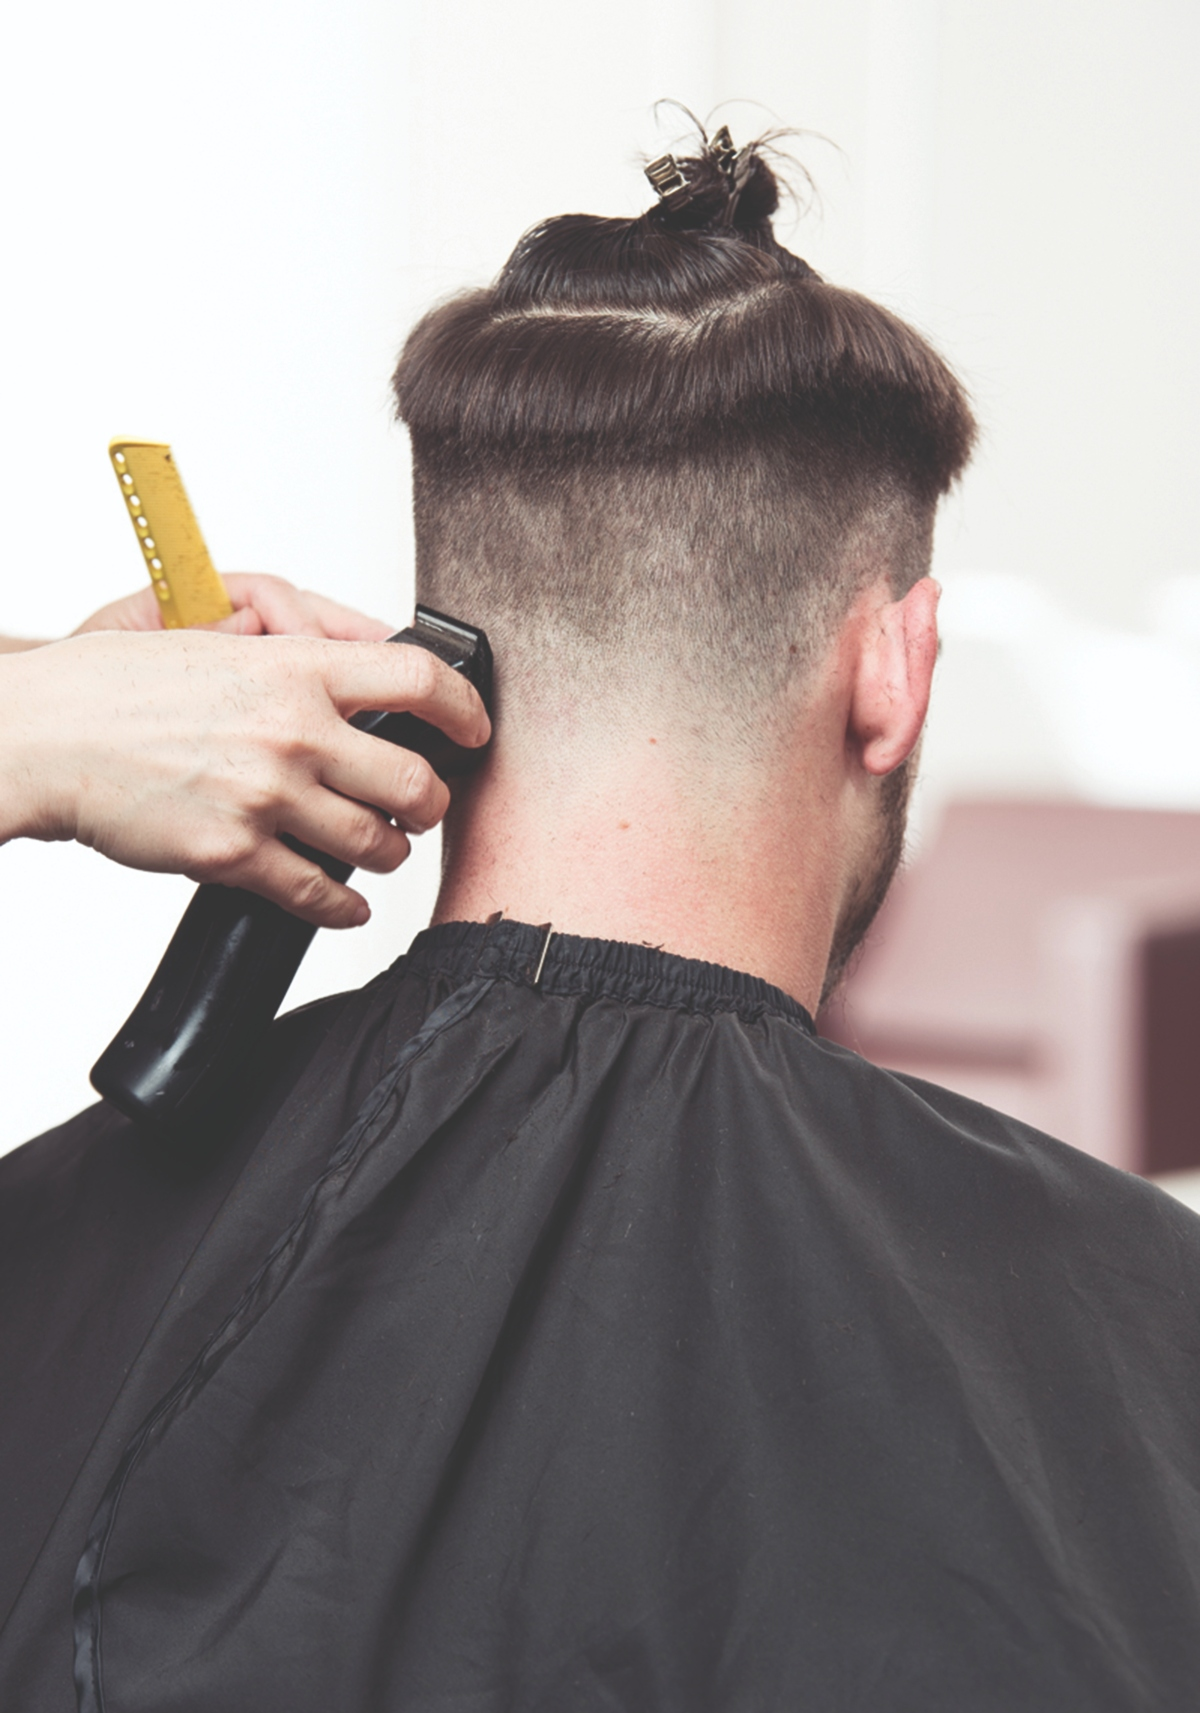 stella_trend_2019_barber_step5